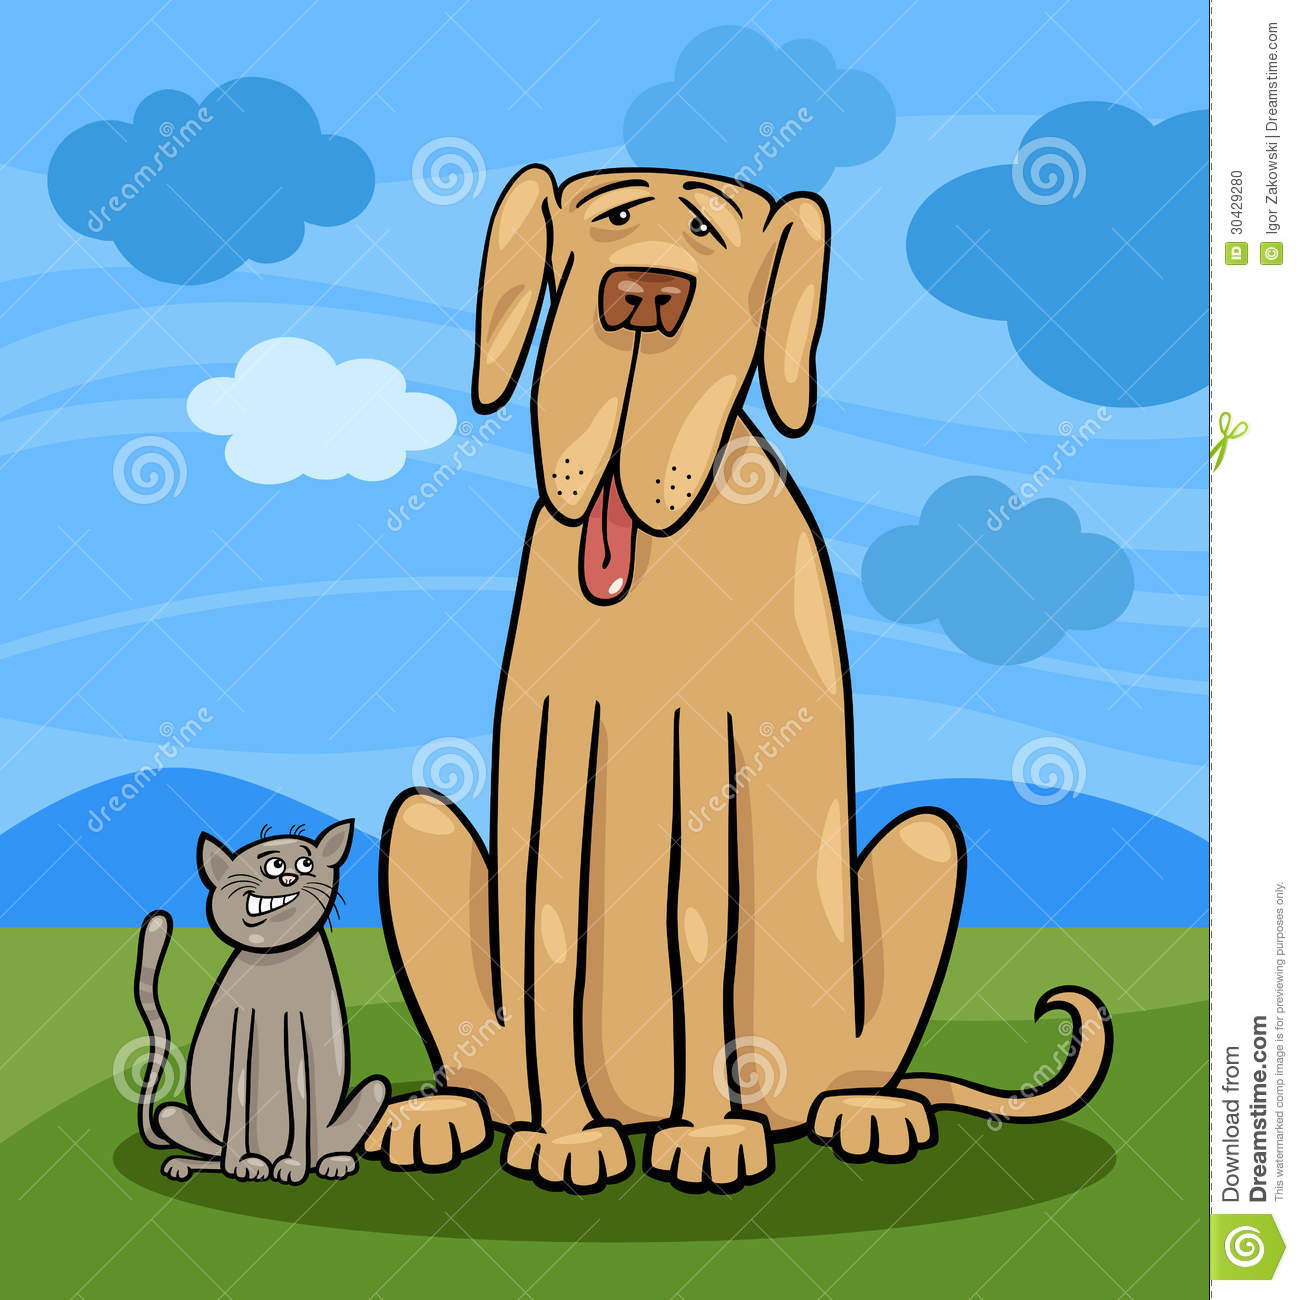 Cartoon Illustration of Cute Small Cat and Funny Big Dog or Great Dane ...